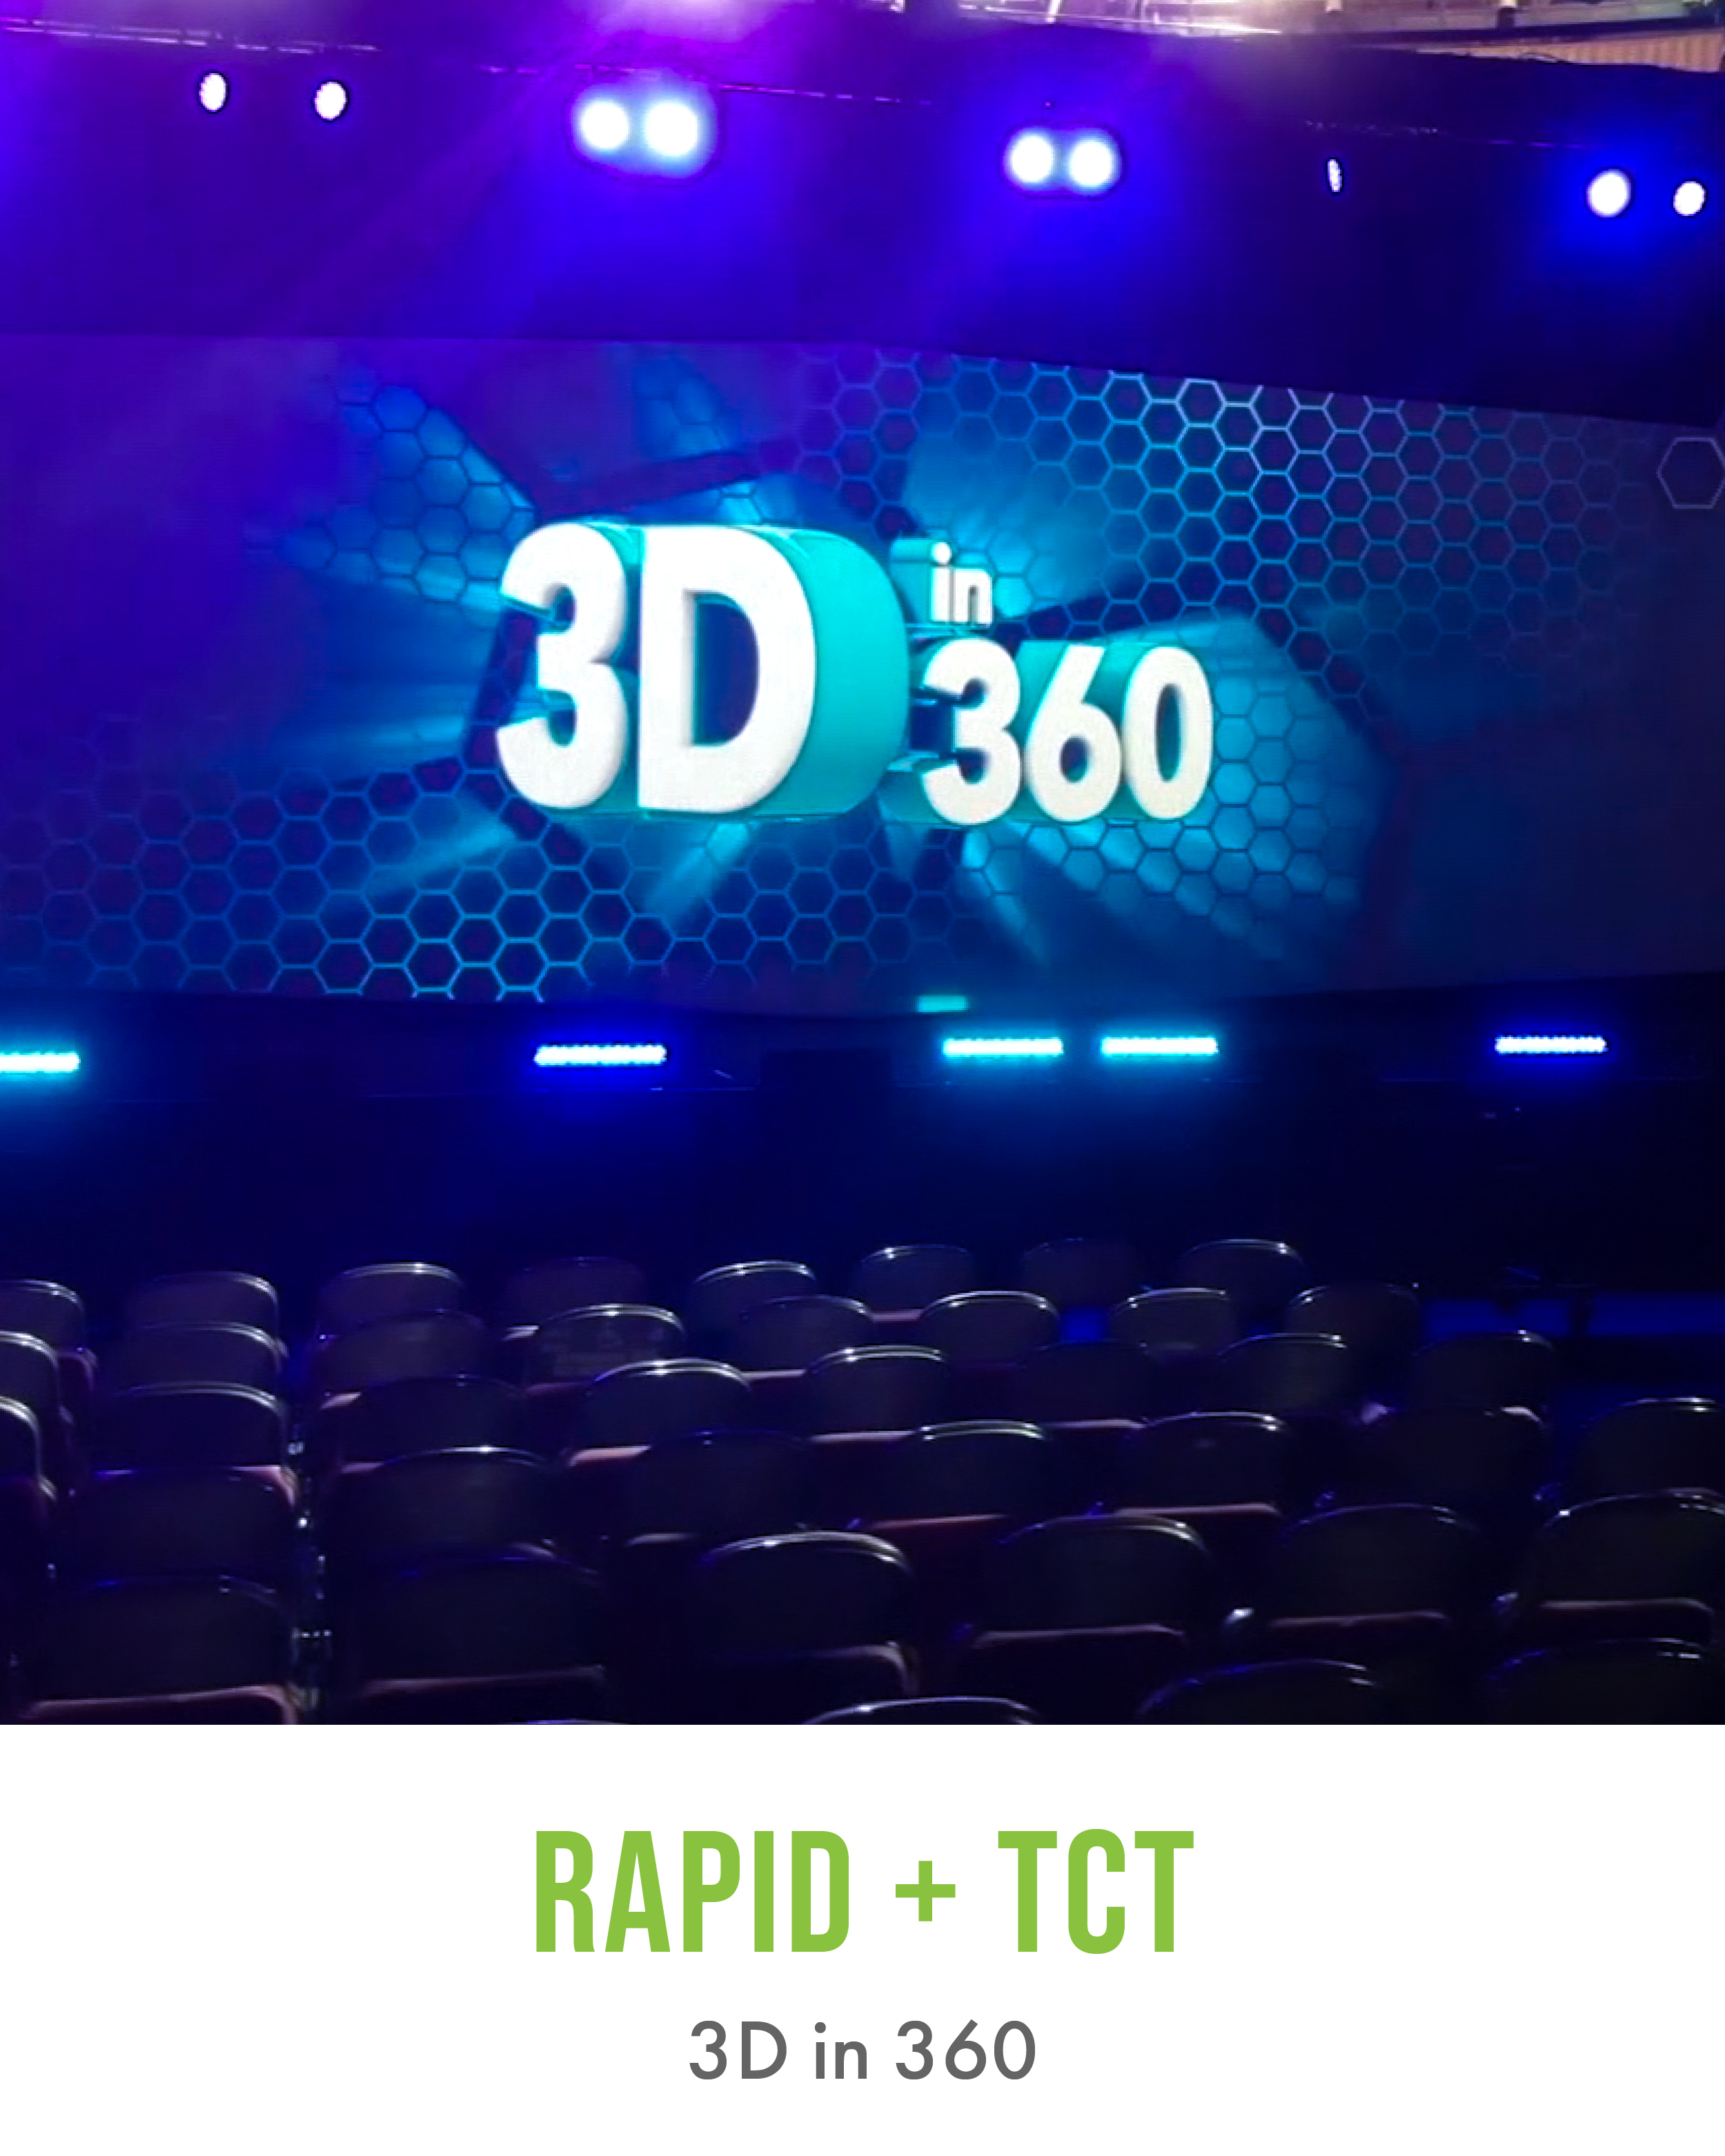 Rapid + TCT 3D in 360